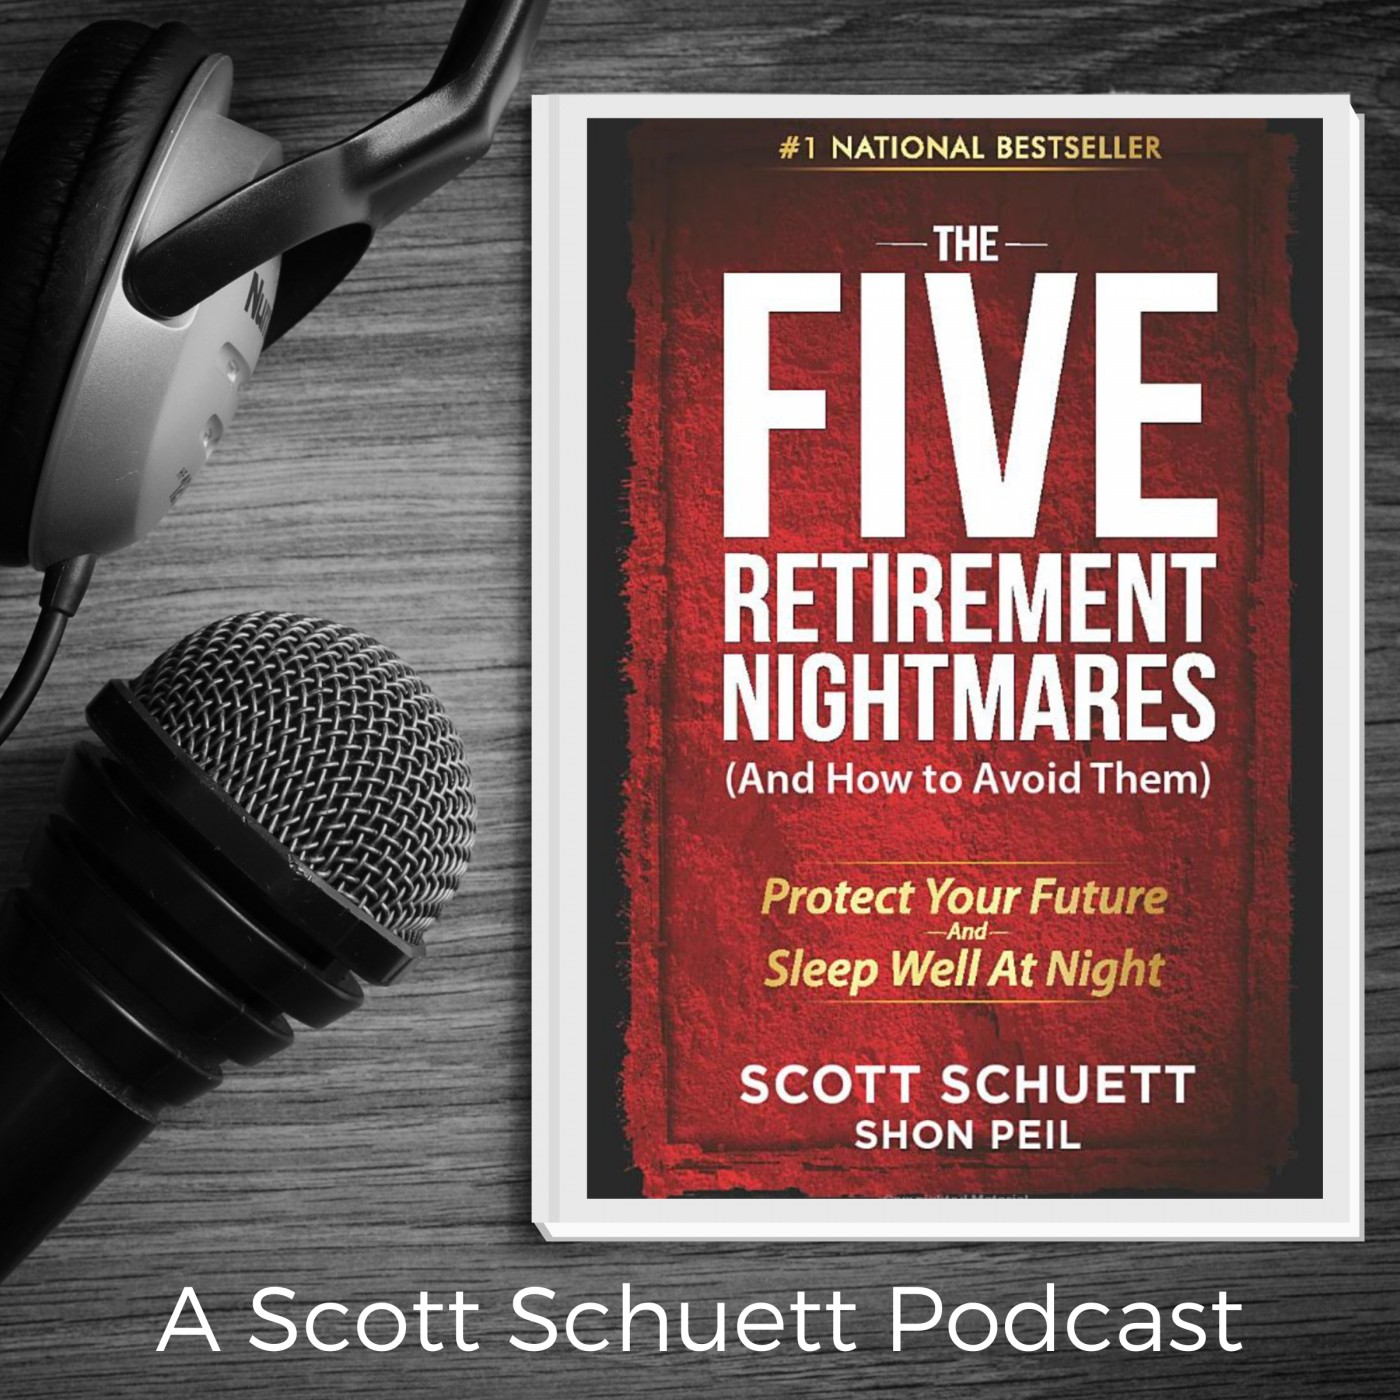 The Five Retirement Nightmares, and How to Avoid Them